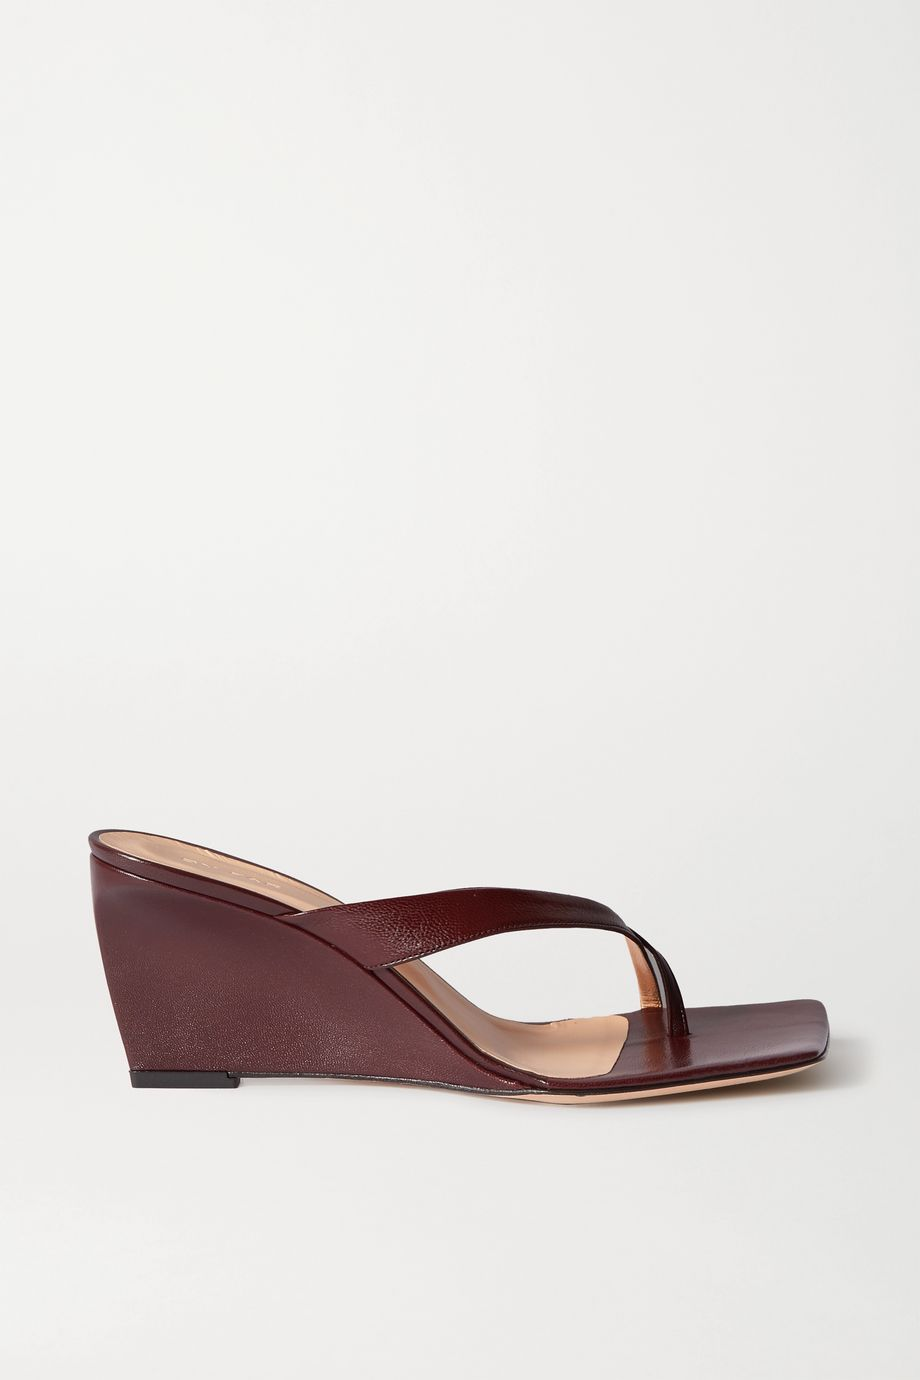 BY FAR Theresa leather wedge mules